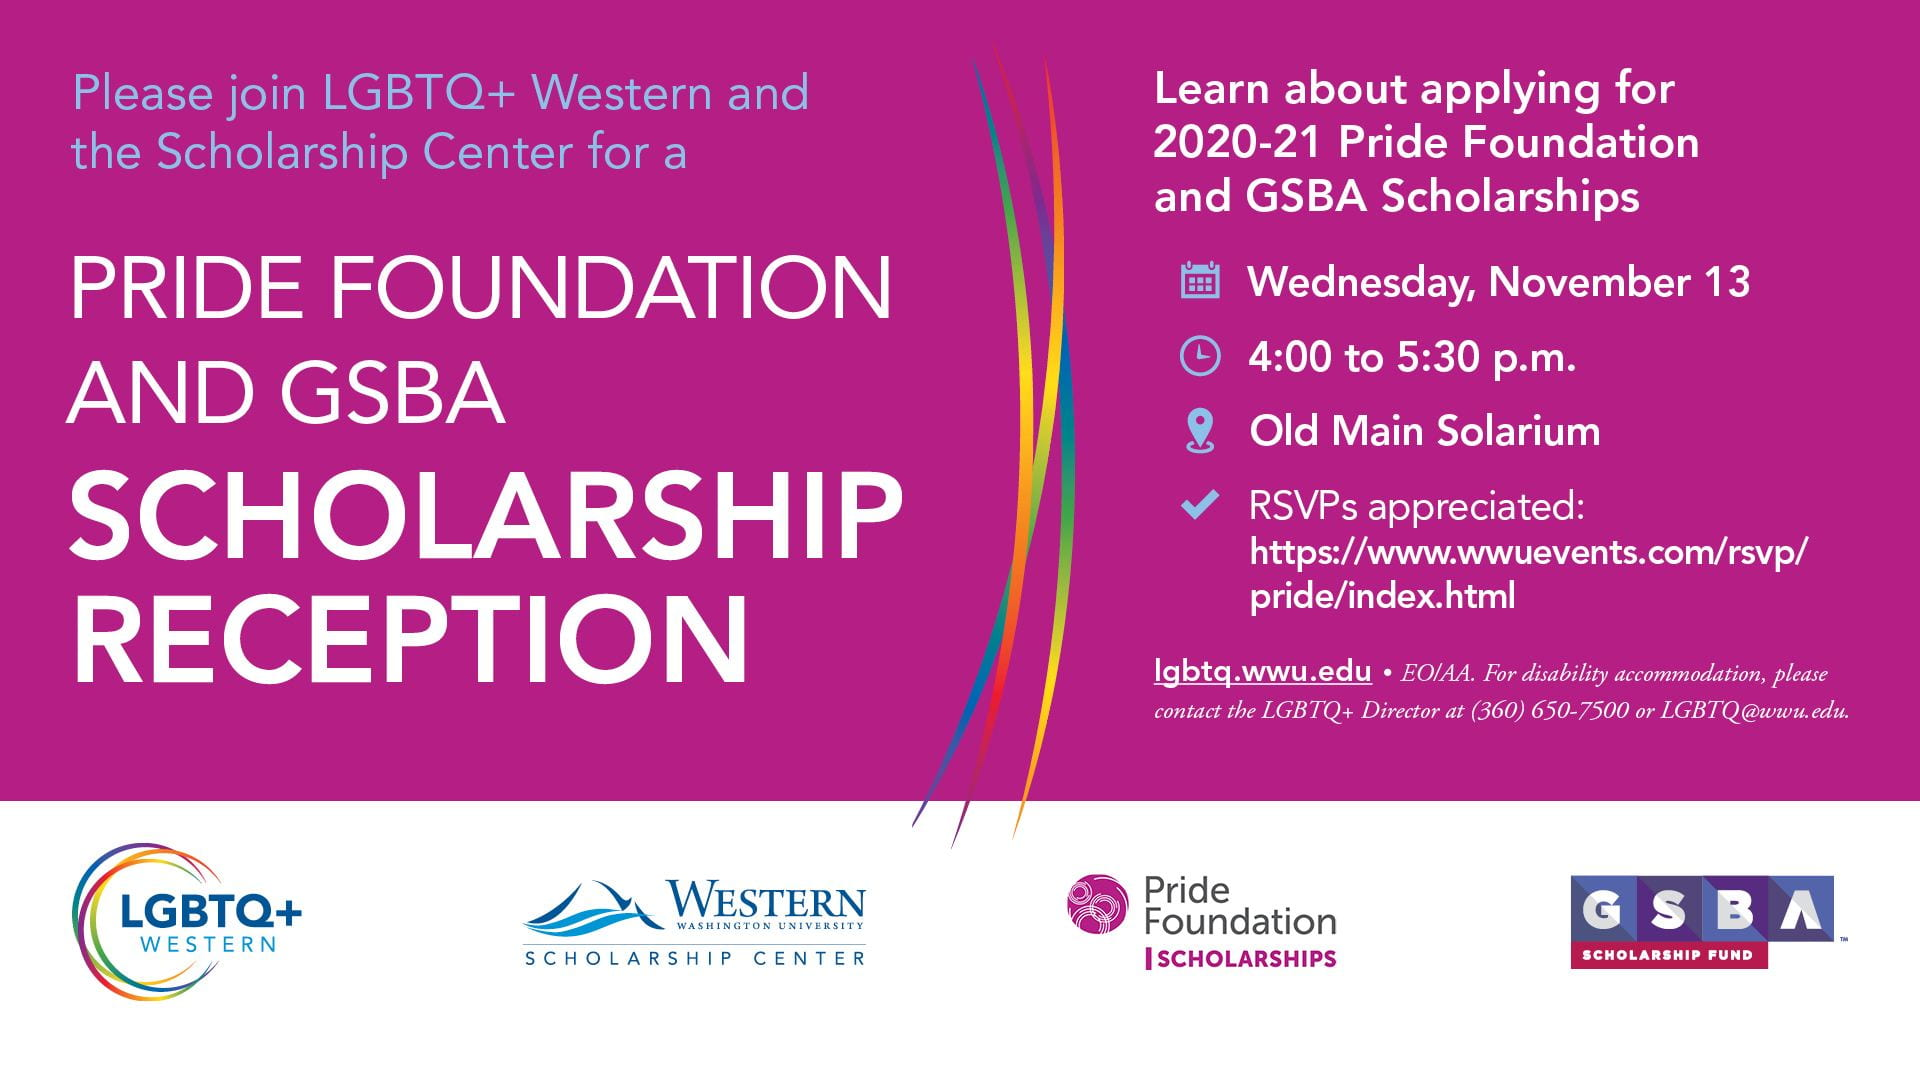 Please join LGBTQ+ Western and the Scholarship Center for a Pride Foundation and GSBA Scholarship Reception Learn about applying for 2020-21 Pride Foundation and GSBA Scholarships Wednesday, November 13 from 4:00 to 5:30 p.m. Old Main Solarium RSVPs appreciated: https://www.wwuevents.com/rsvp/pride/index.html. For accommodation, contact LGBTQ+ Director (360) 650-7500 or LGBTQ@wwu.edu.